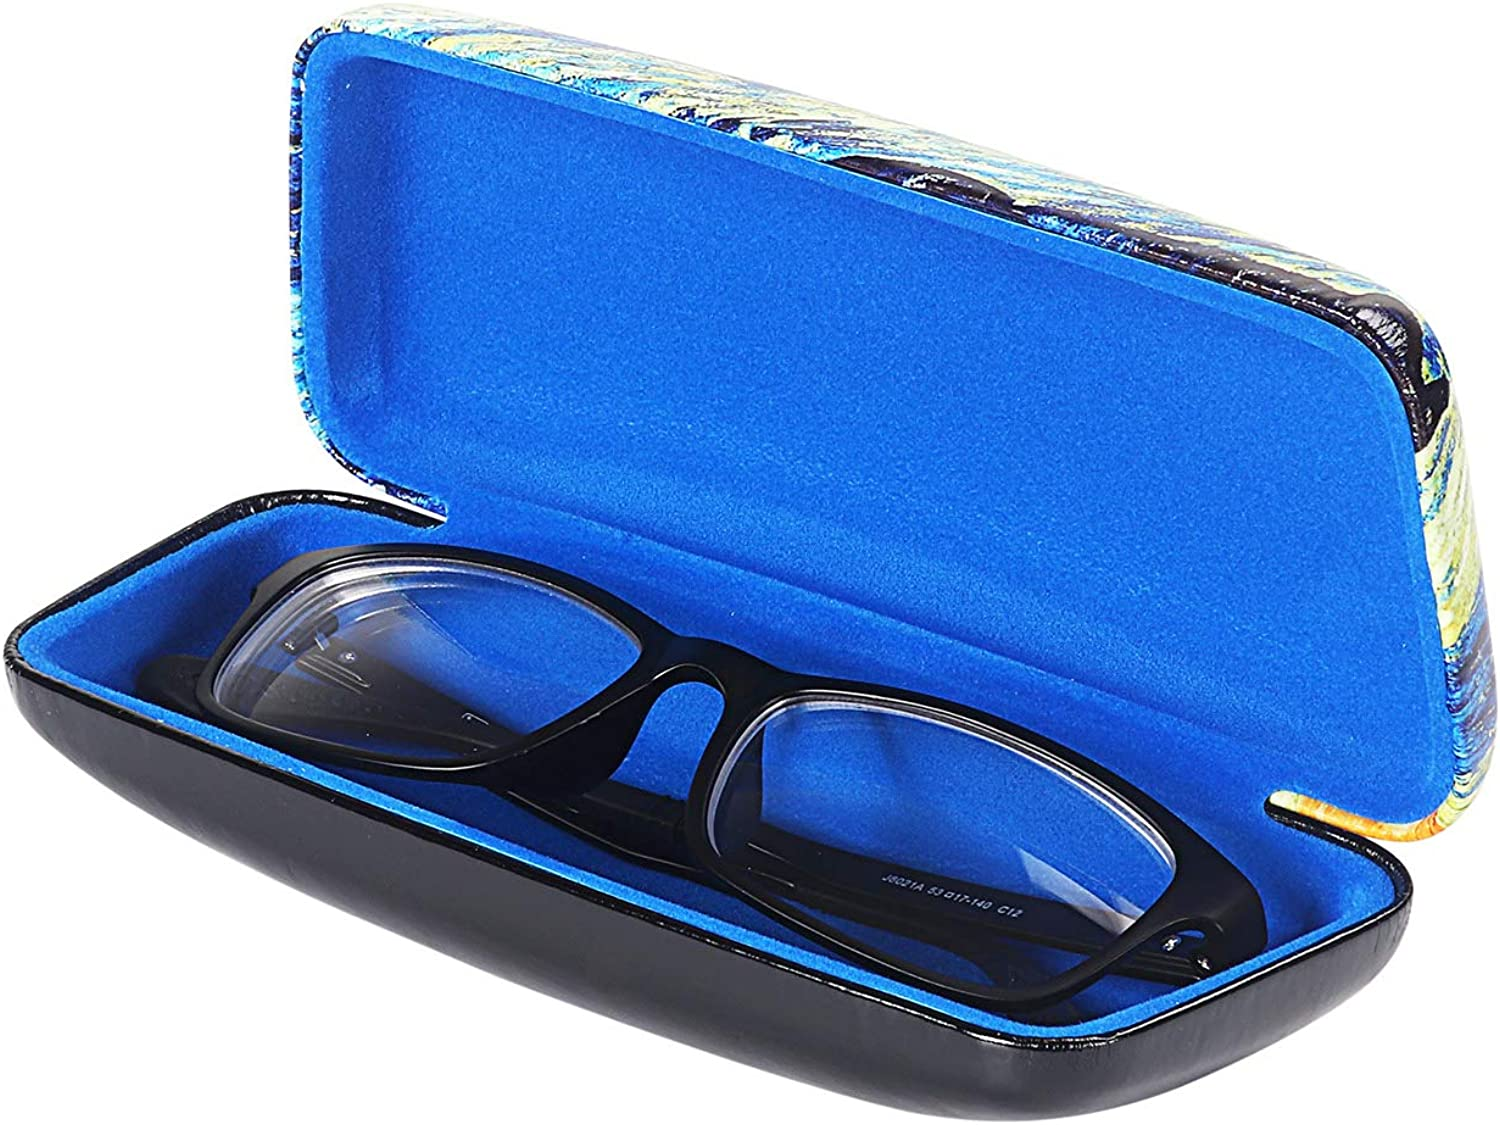 Protects Eyewear from Damages 2 Pack, Black Slip In Glasses Case Sleeve with Pocket Clip